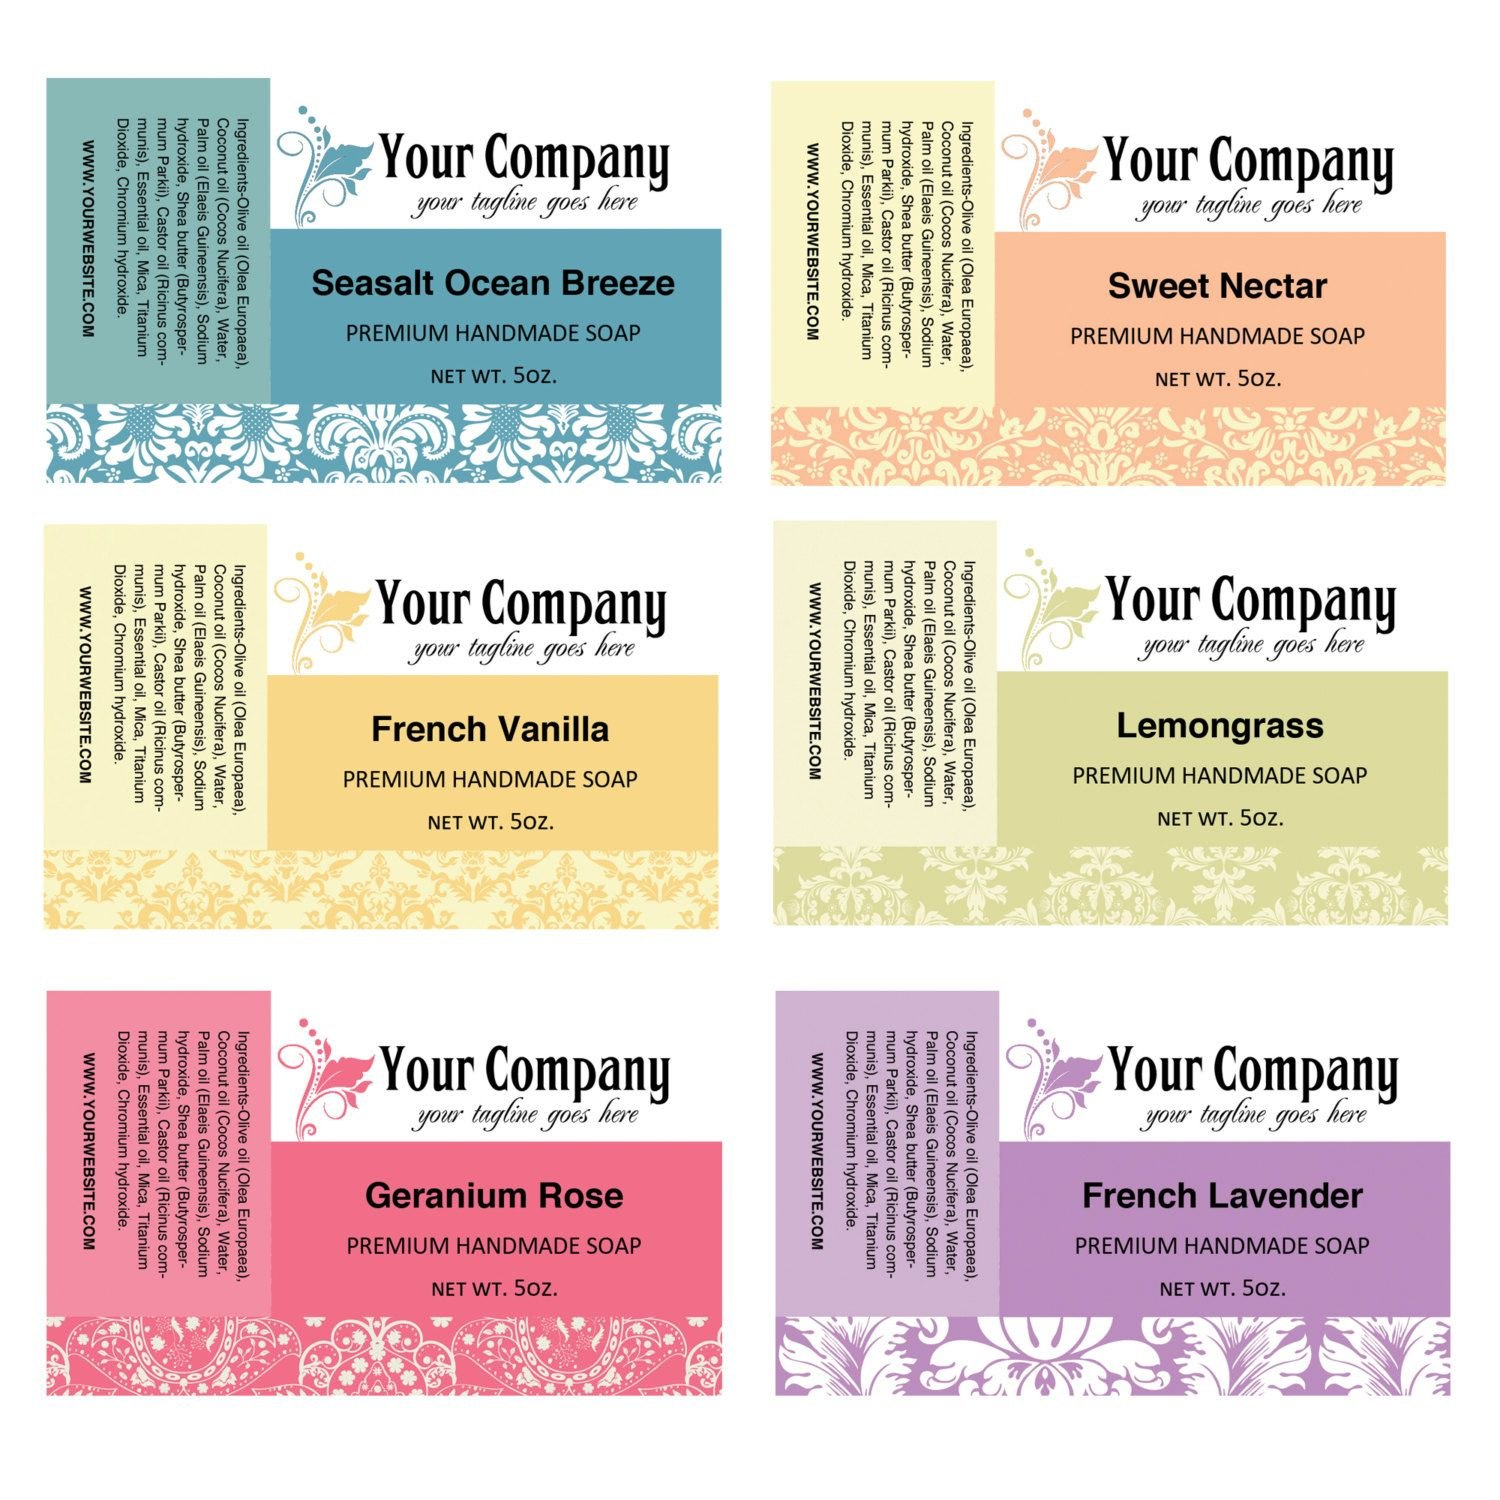 Formidable Free Printable Soap Label Templates Template Ideas Cigar Pertaining To Free Printable Soap Label Templates